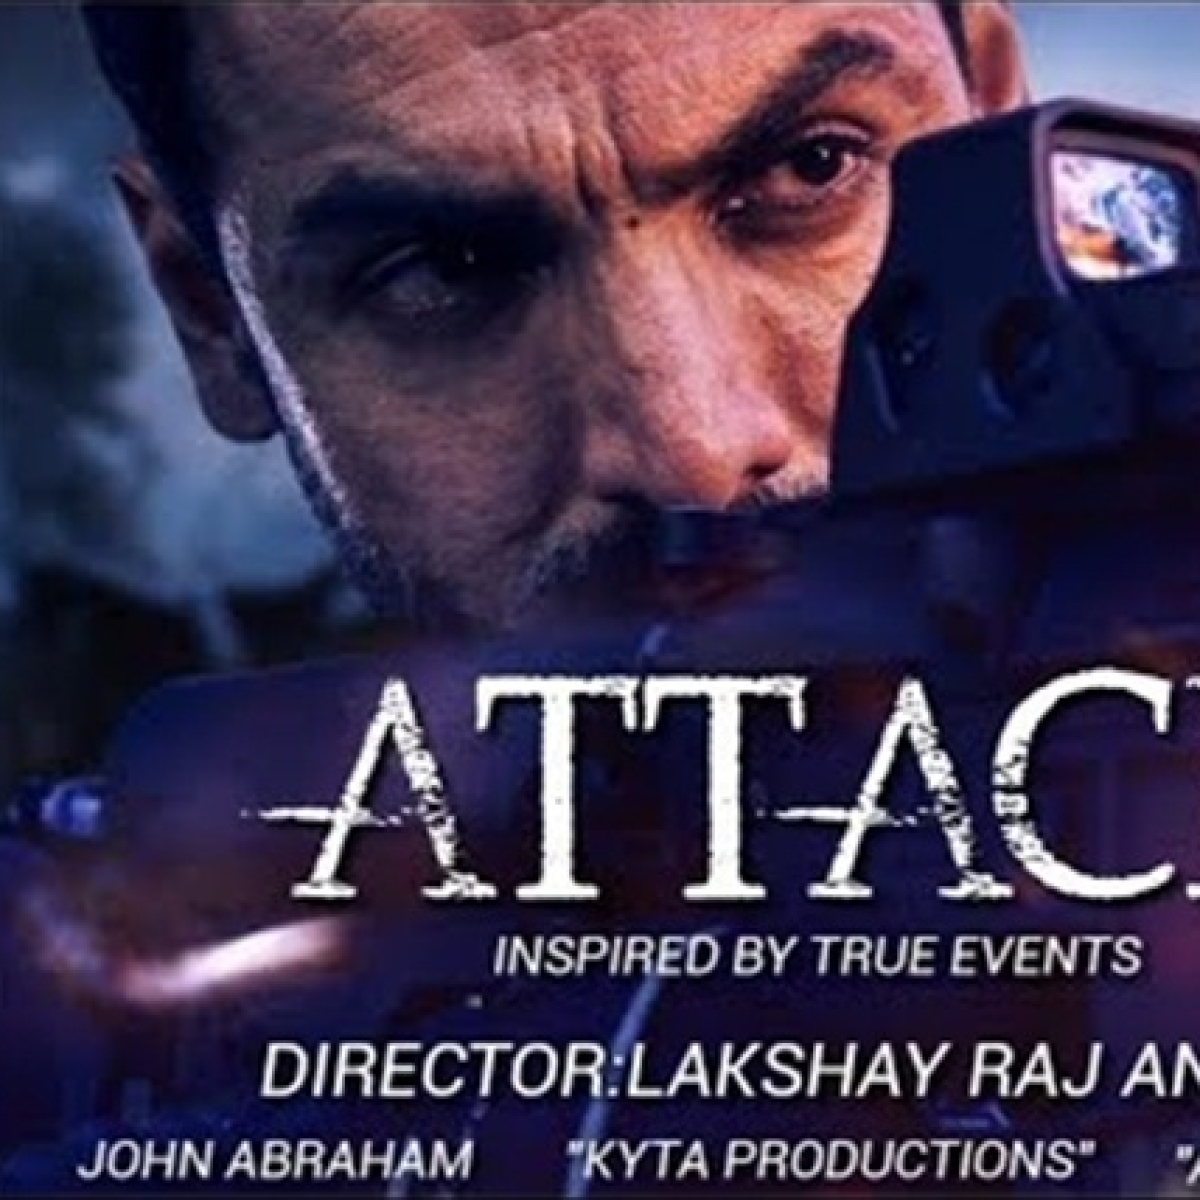 John Abraham, Jacqueline Fernandez to 'Attack' on Independence Day 2020?